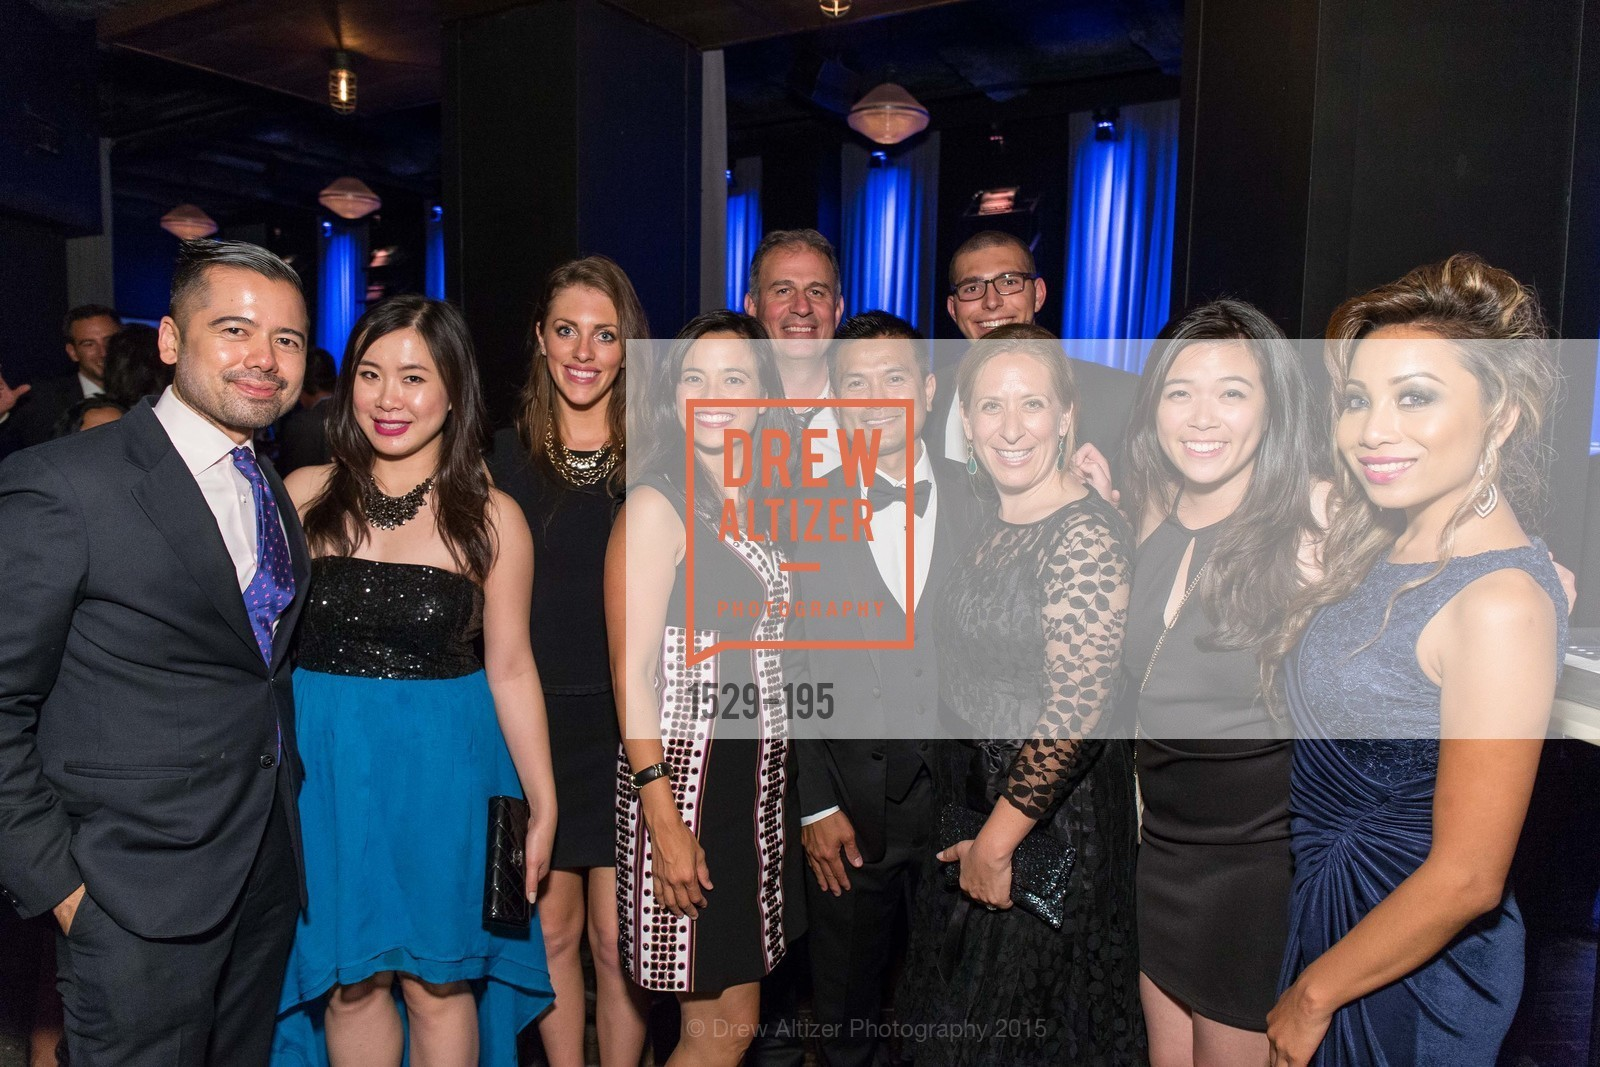 Jobe Danganan, Alice Pak, Katie Secrest, Allison Stamos, Nick Stamos, Matt Cramer, Rachel Bernstein, Isabel Yu, Pov Oum, Climb Real Estate and Sindeo Celebrate the Launch of Million Dollar Listing San Francisco, Local Edition San Francisco. 691 Market St, July 8th, 2015,Drew Altizer, Drew Altizer Photography, full-service agency, private events, San Francisco photographer, photographer california